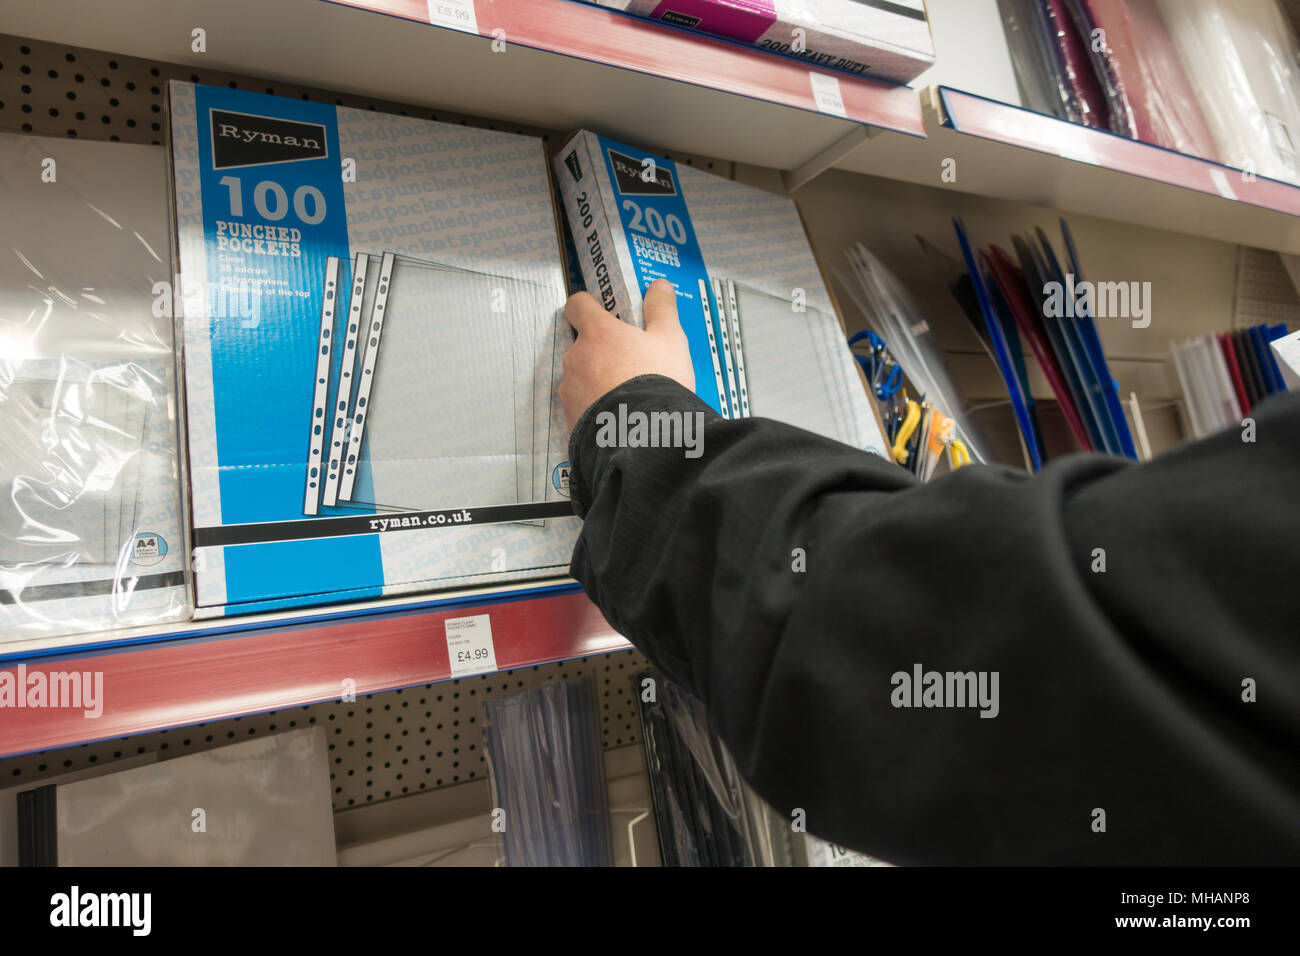 buying stationary in a shop - Stock Image